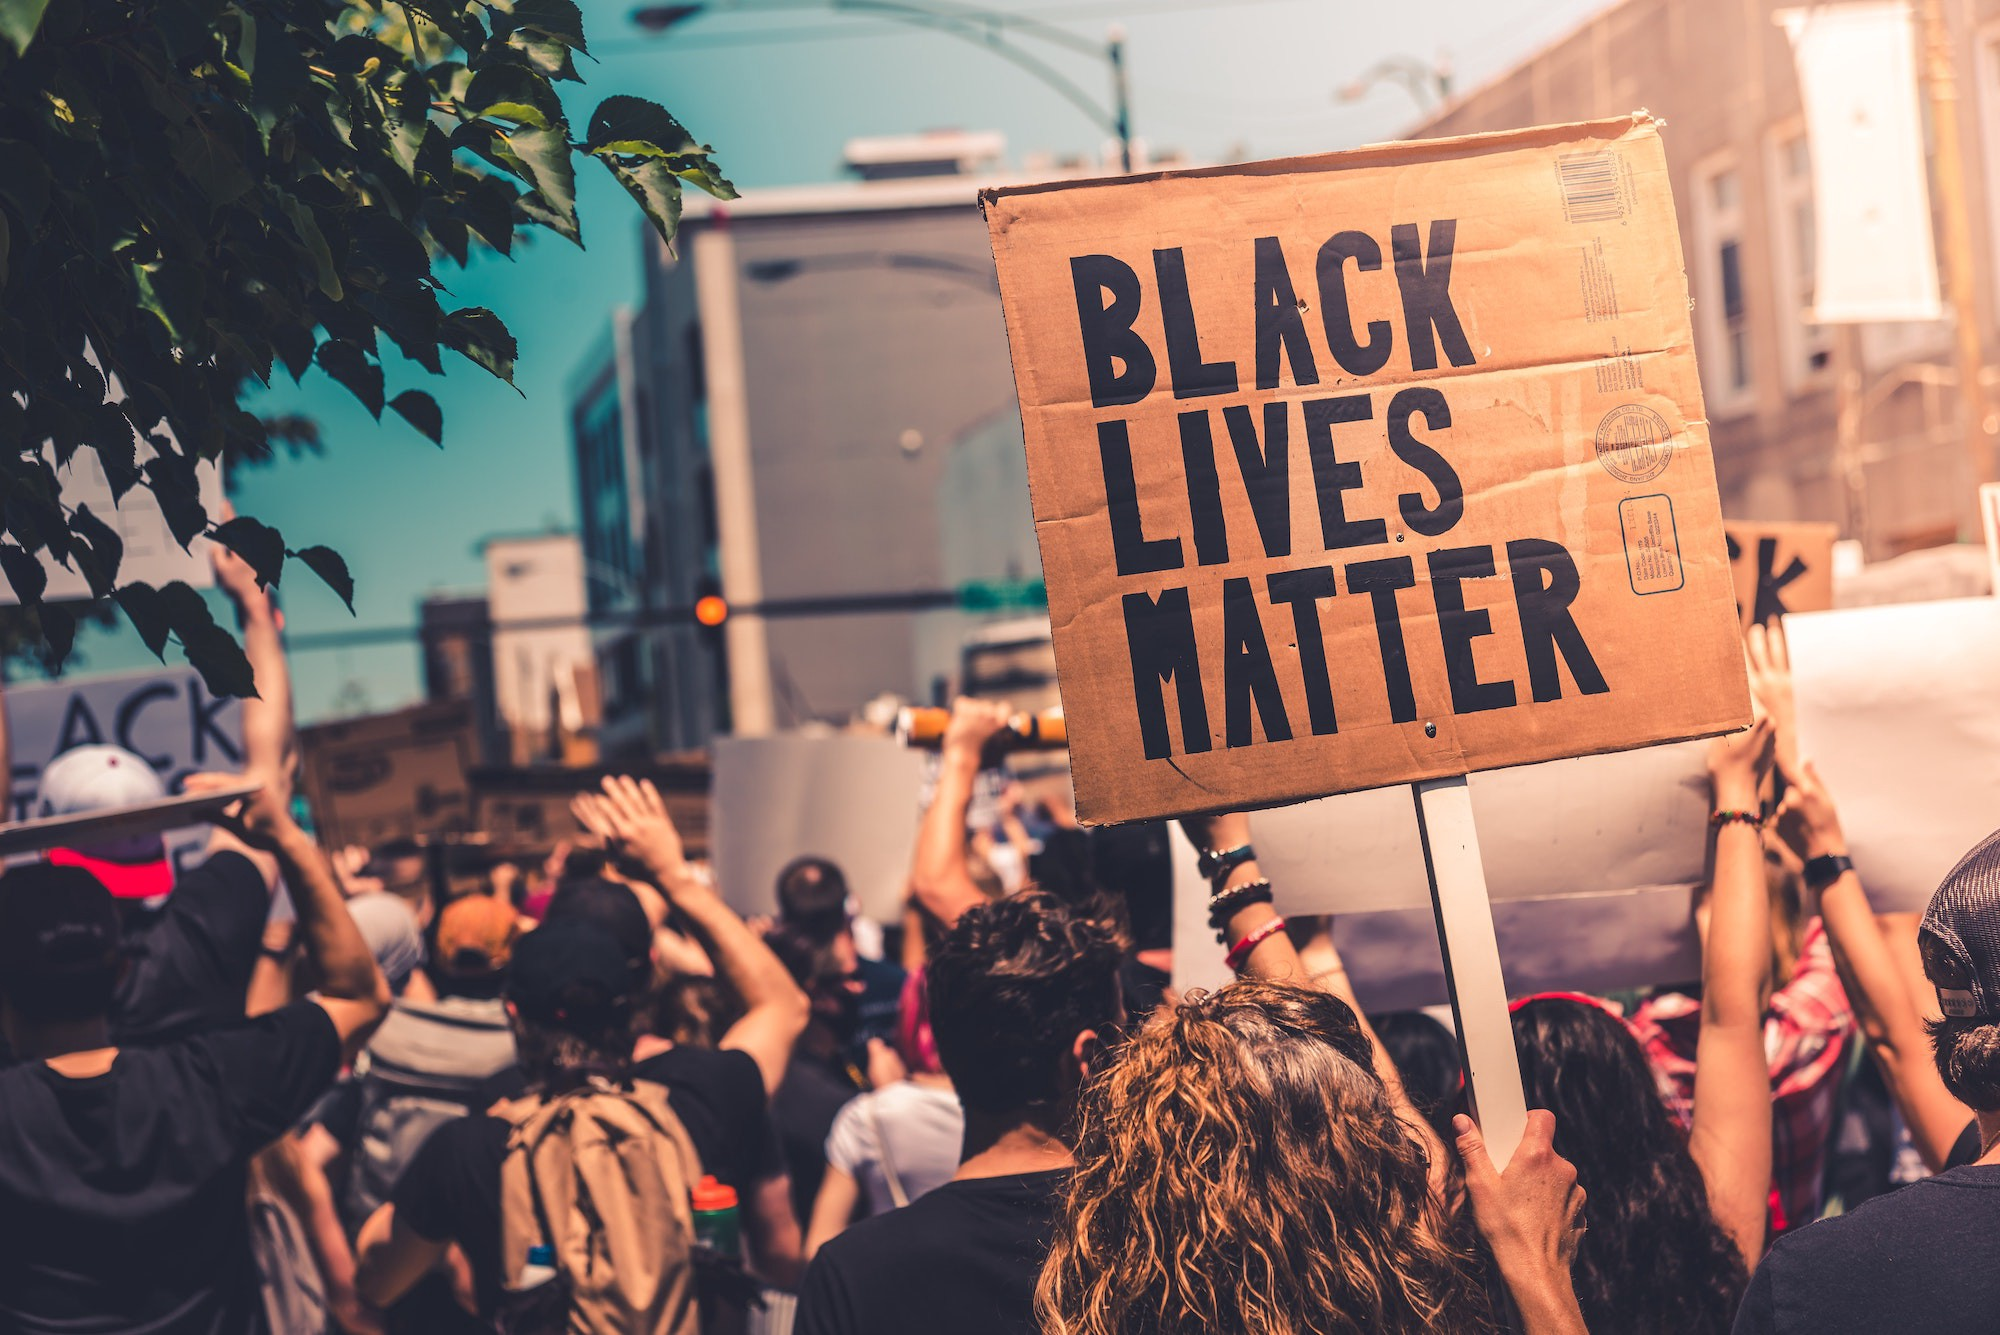 Protestors crowd a street, facing away from the camera. Facing the camera is a cardboard sign saying Black Lives Matter.